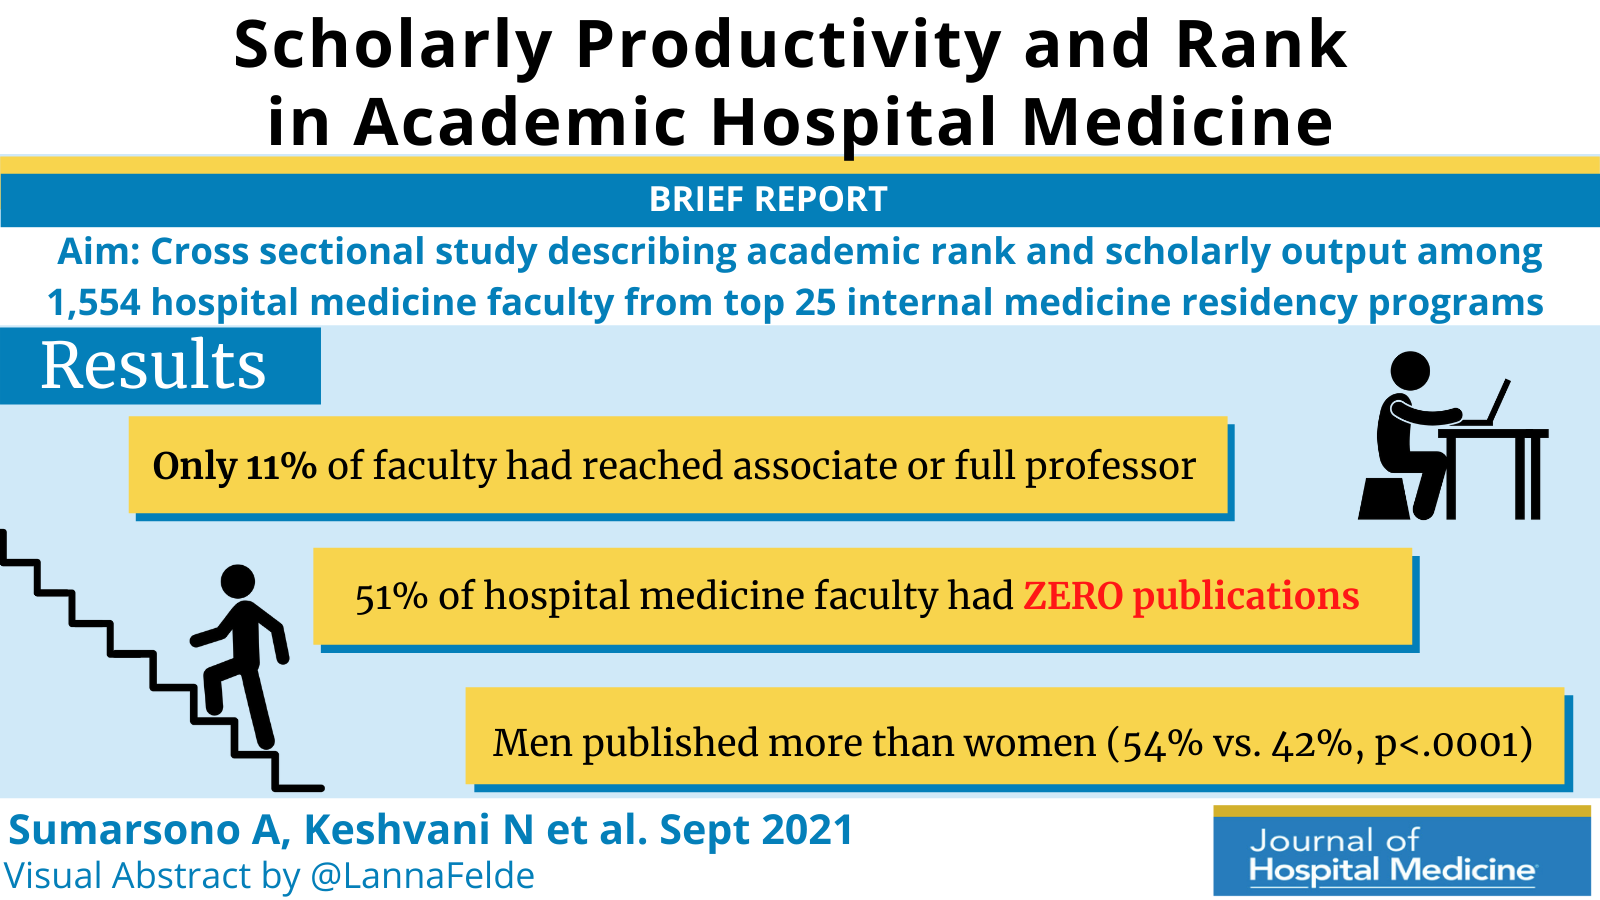 Scholarly Productivity and Rank in Academic Hospital Medicine